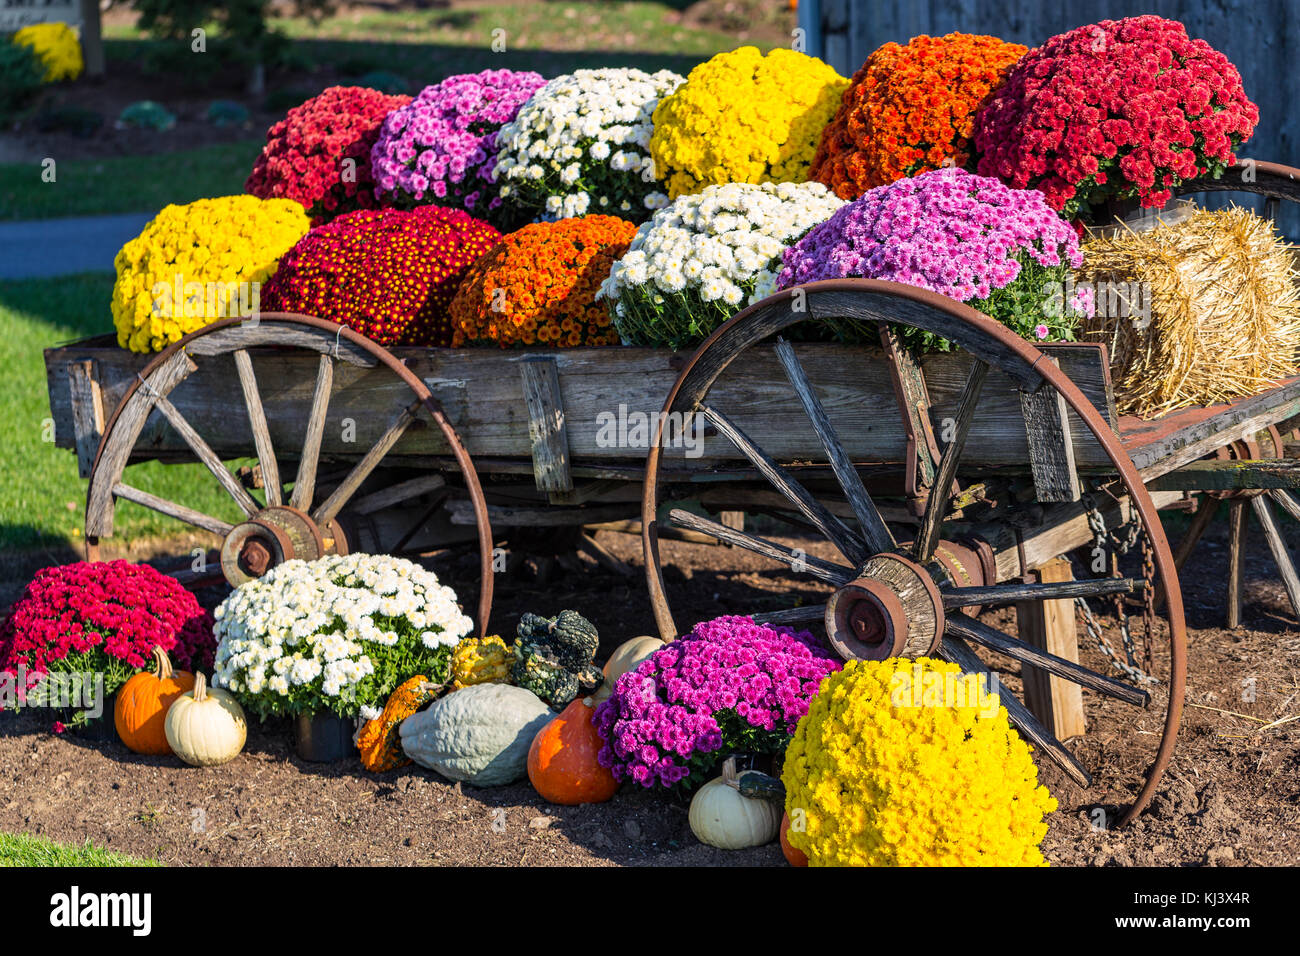 Colorful Fall Mums In An Old Farm Wagon Stock Photo Alamy